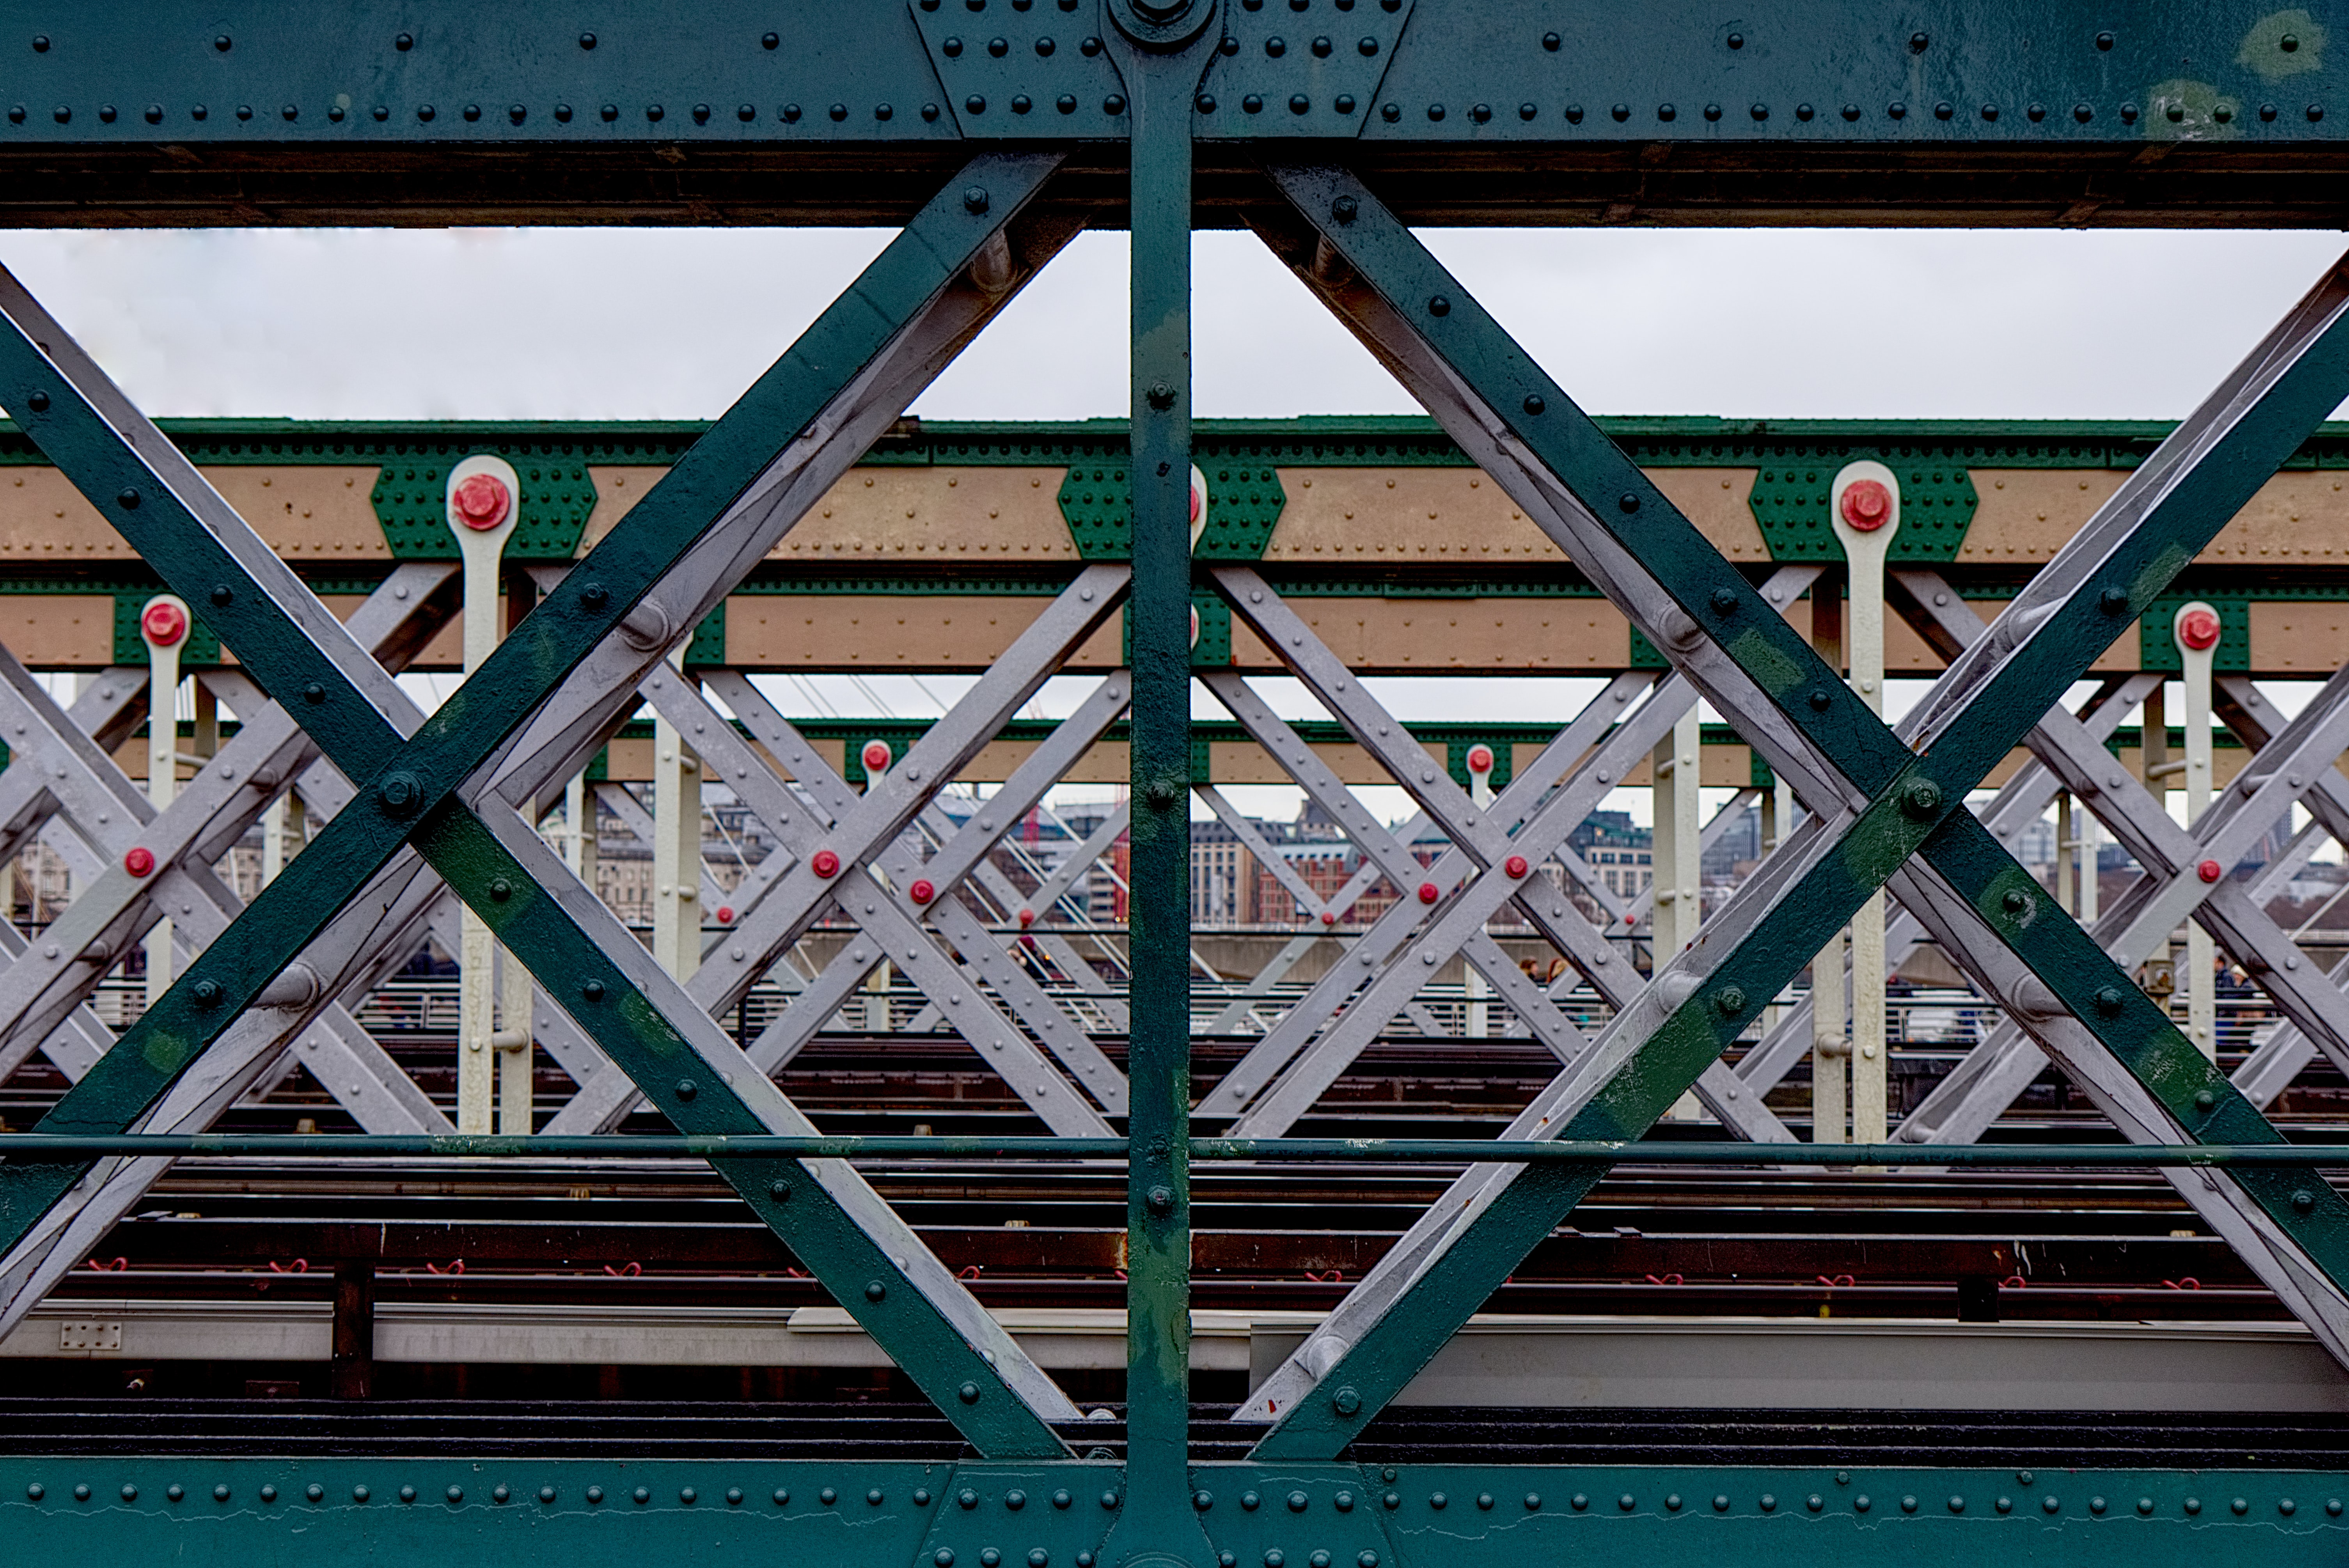 photography of green and white metal structures